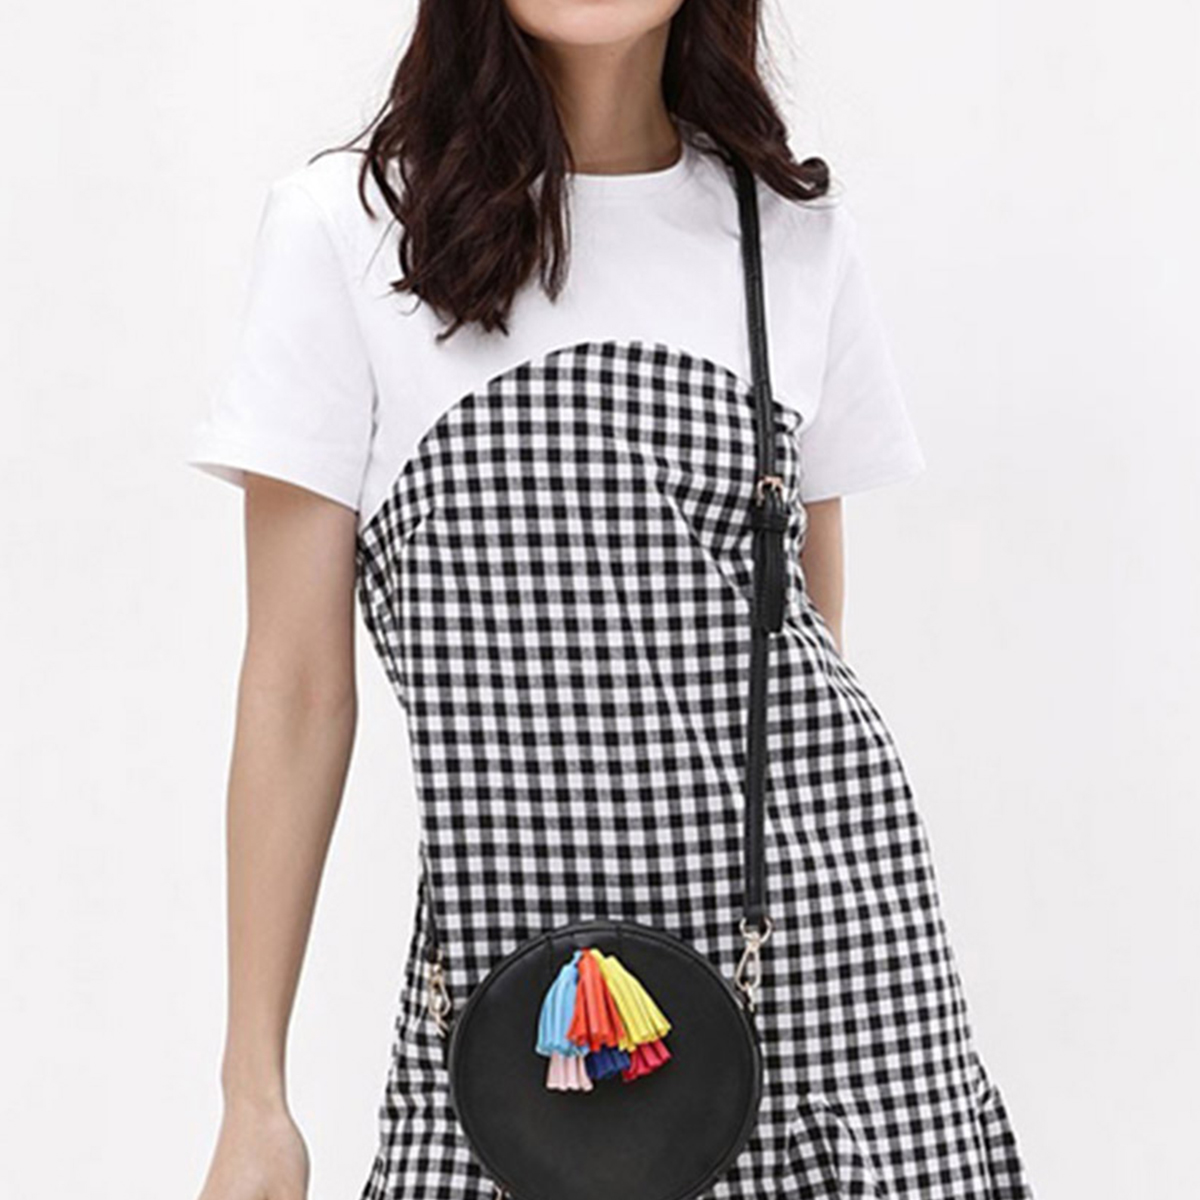 Mesmerising Black-White Colored Checked Cotton Tunic